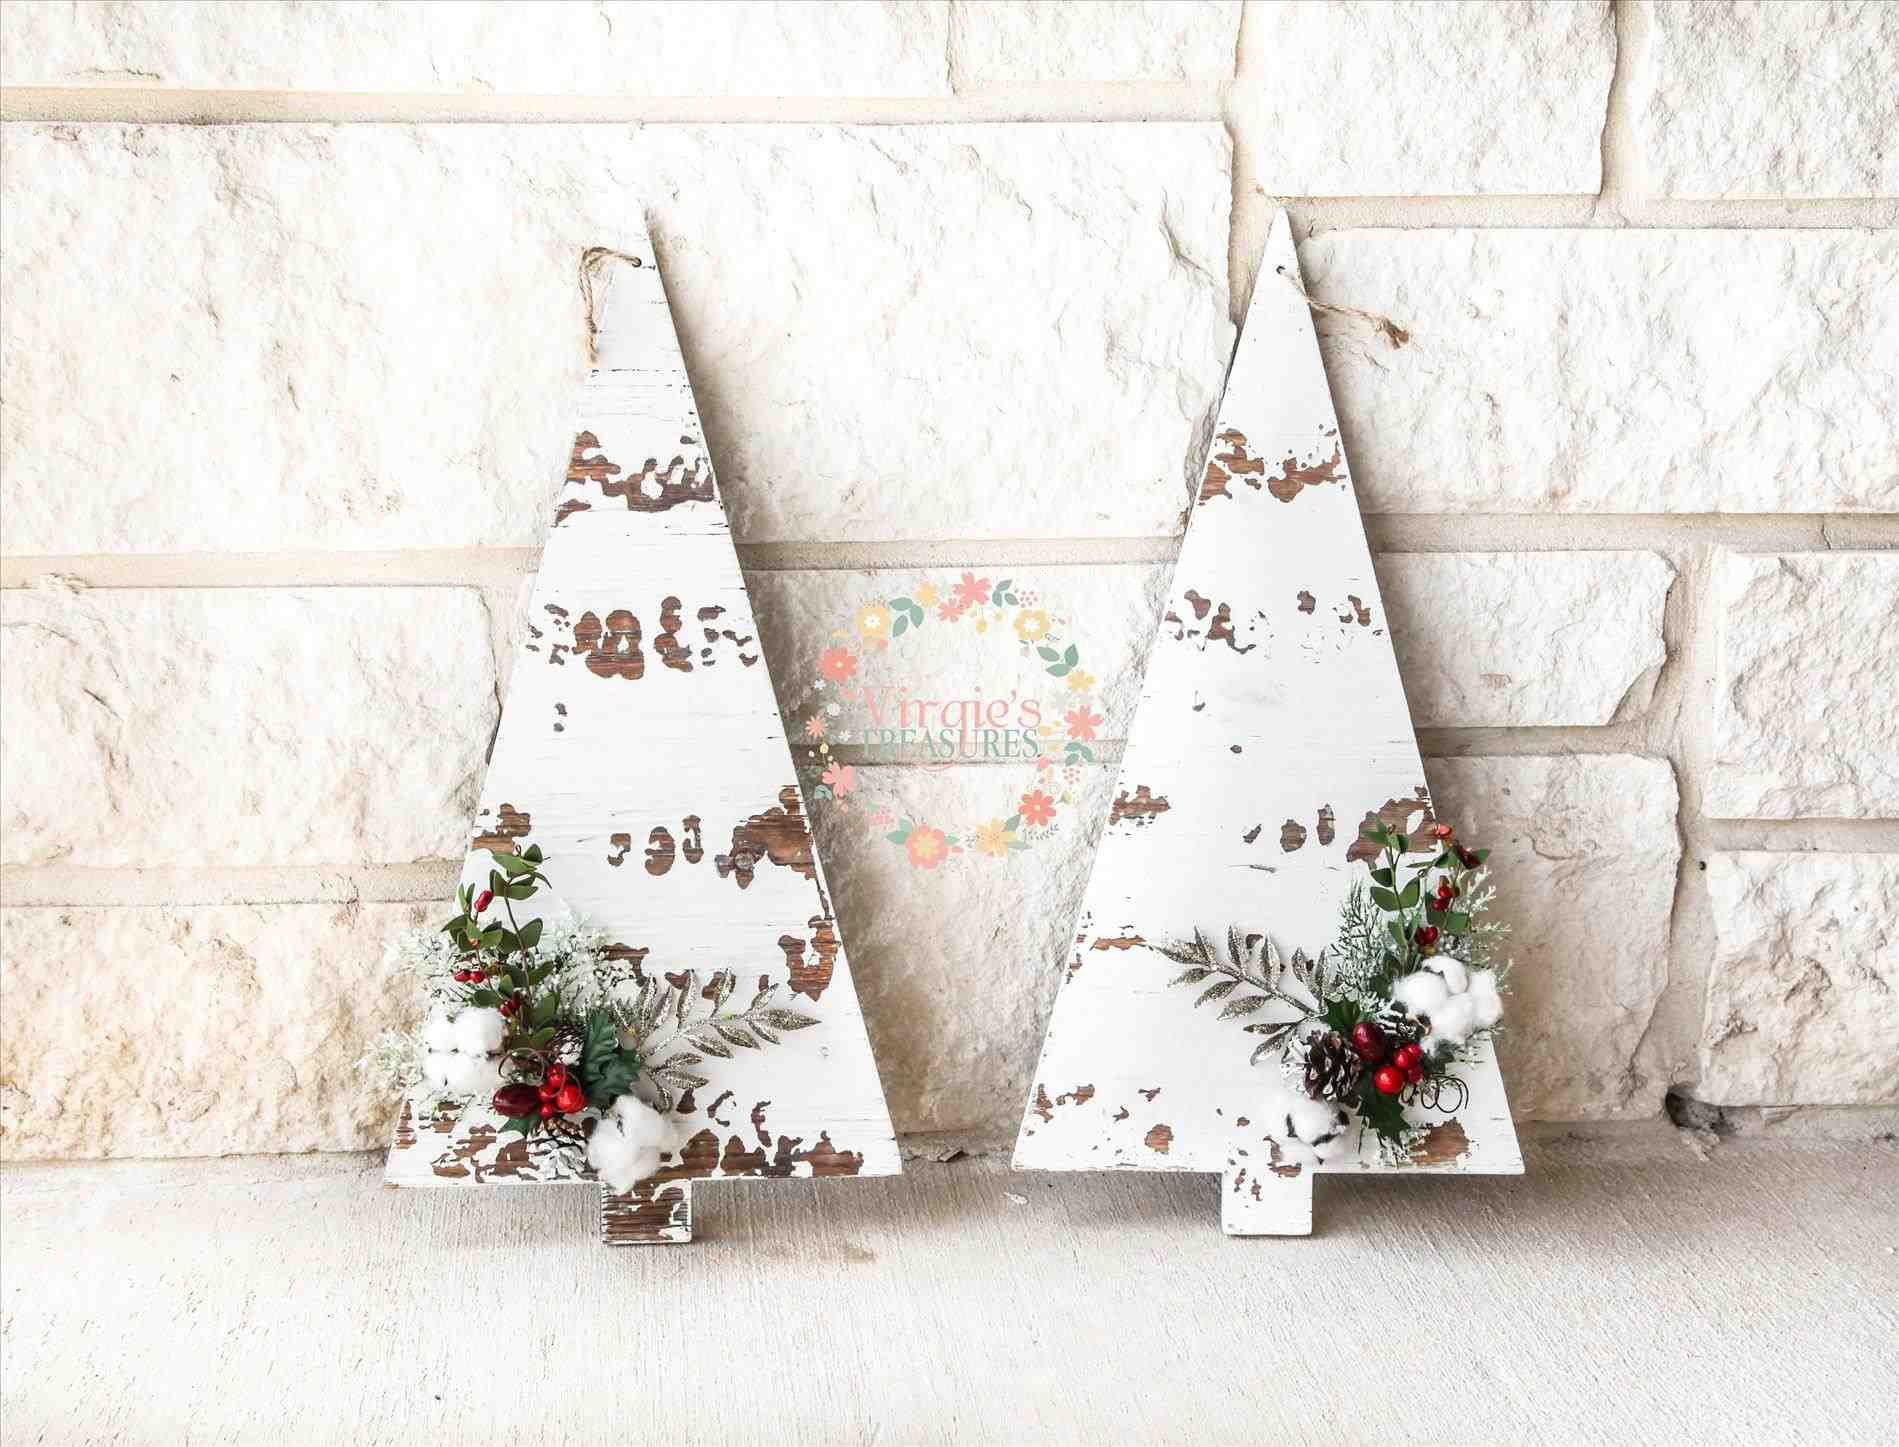 christmas tree for cemetery vase of best of christmas 2018 images 3000 inspirational quotes best throughout christmas home luxury wall decor wall decal luxury 1 kirkland wall